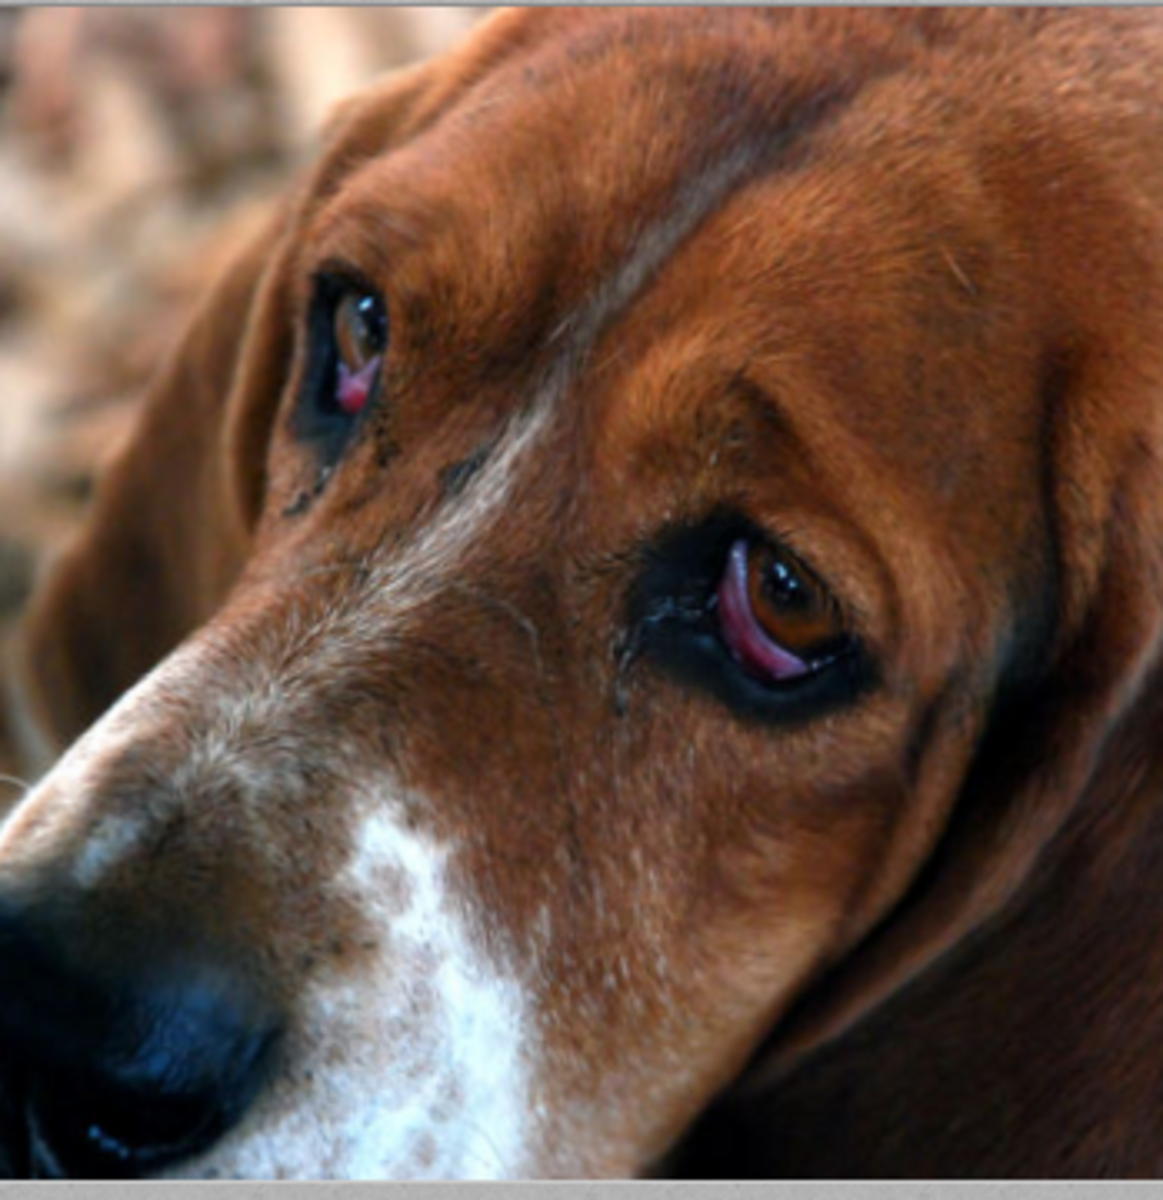 Why Do Some Dogs Have Two Different Colored Eyes